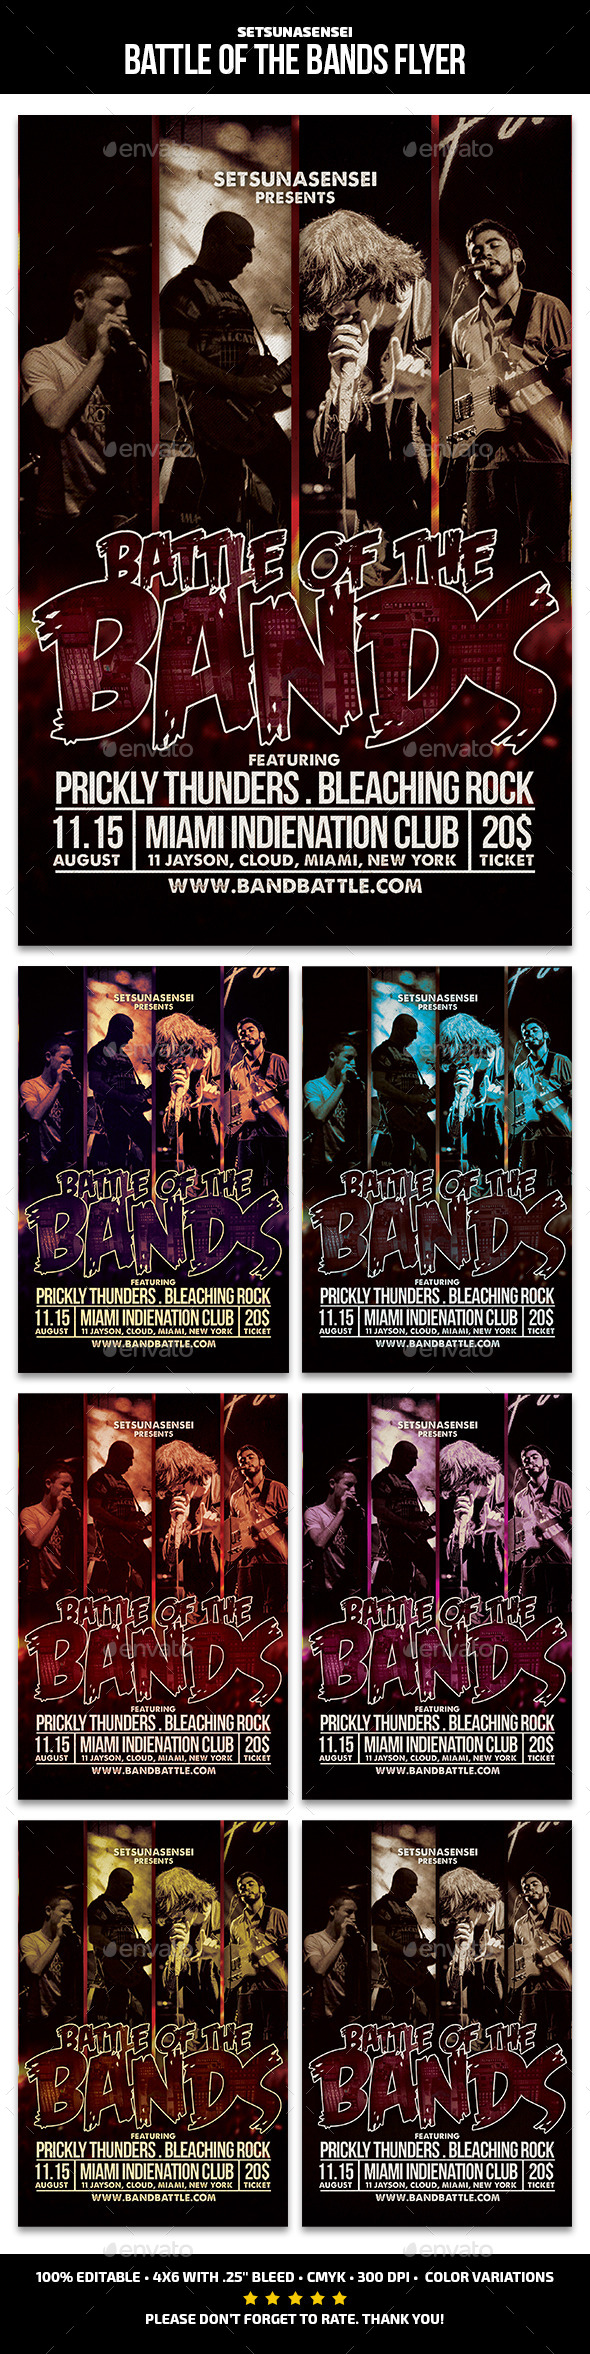 GraphicRiver Battle of the Bands Flyer Flyer 11102025